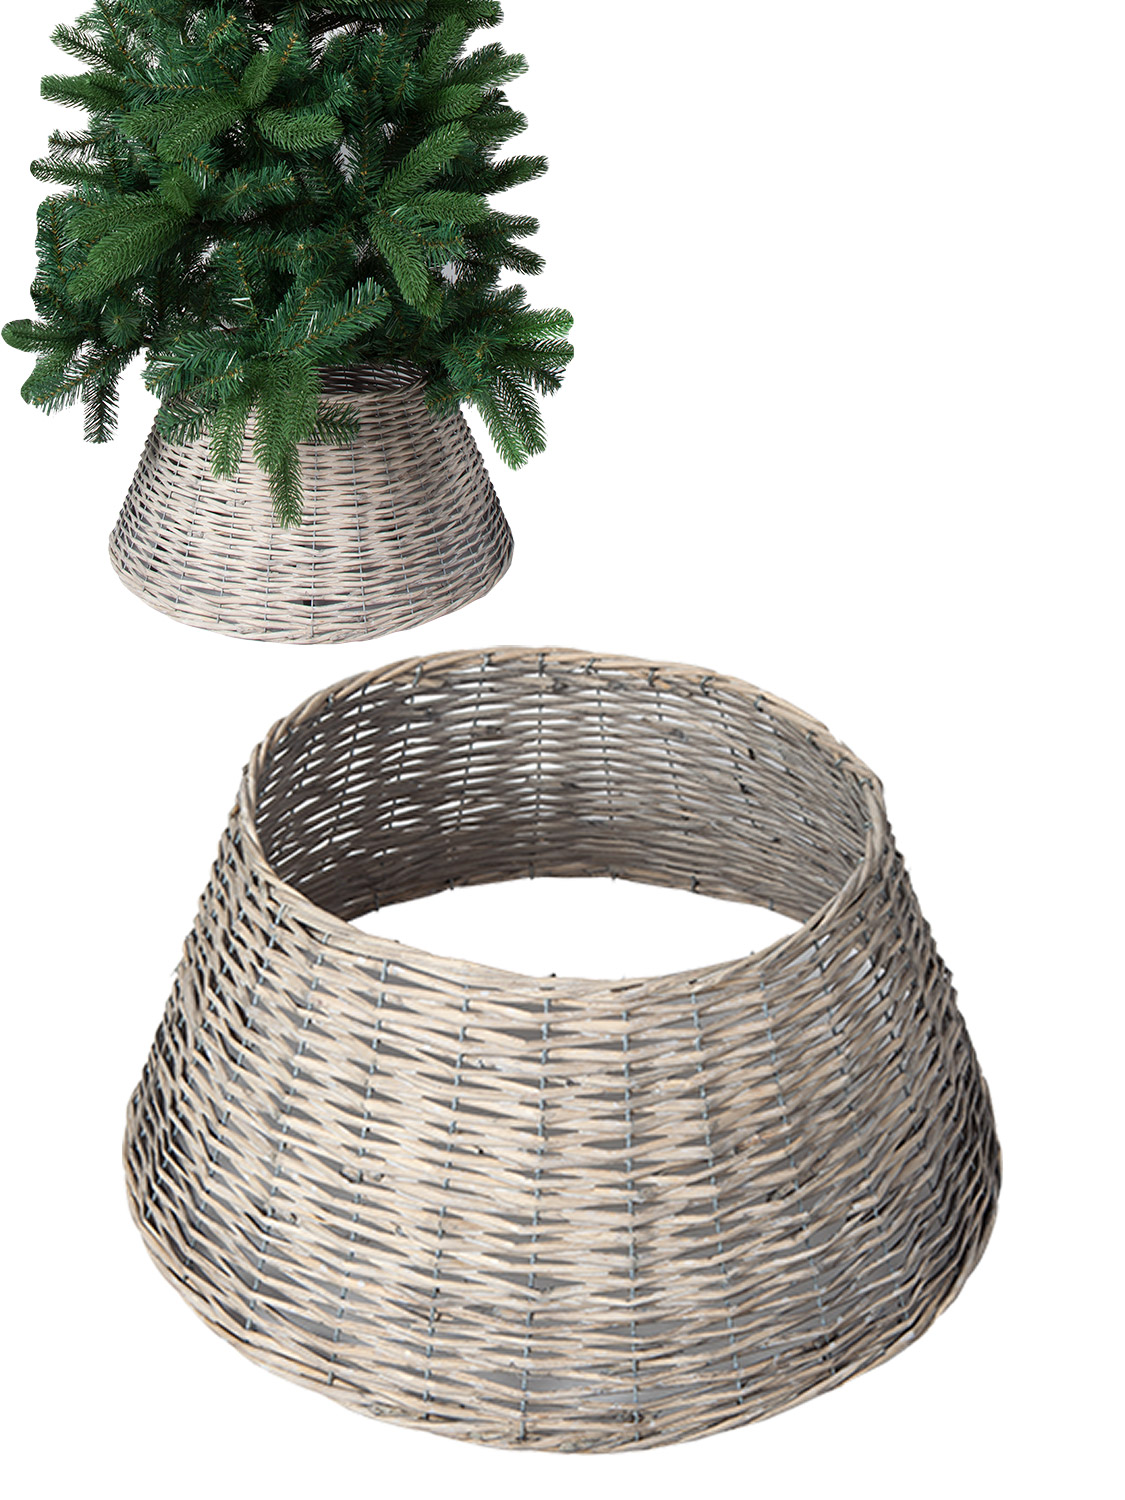 Grey Brown Natural Willow Tree Skirt Cover Base Christmas Wicker Decoration Ebay